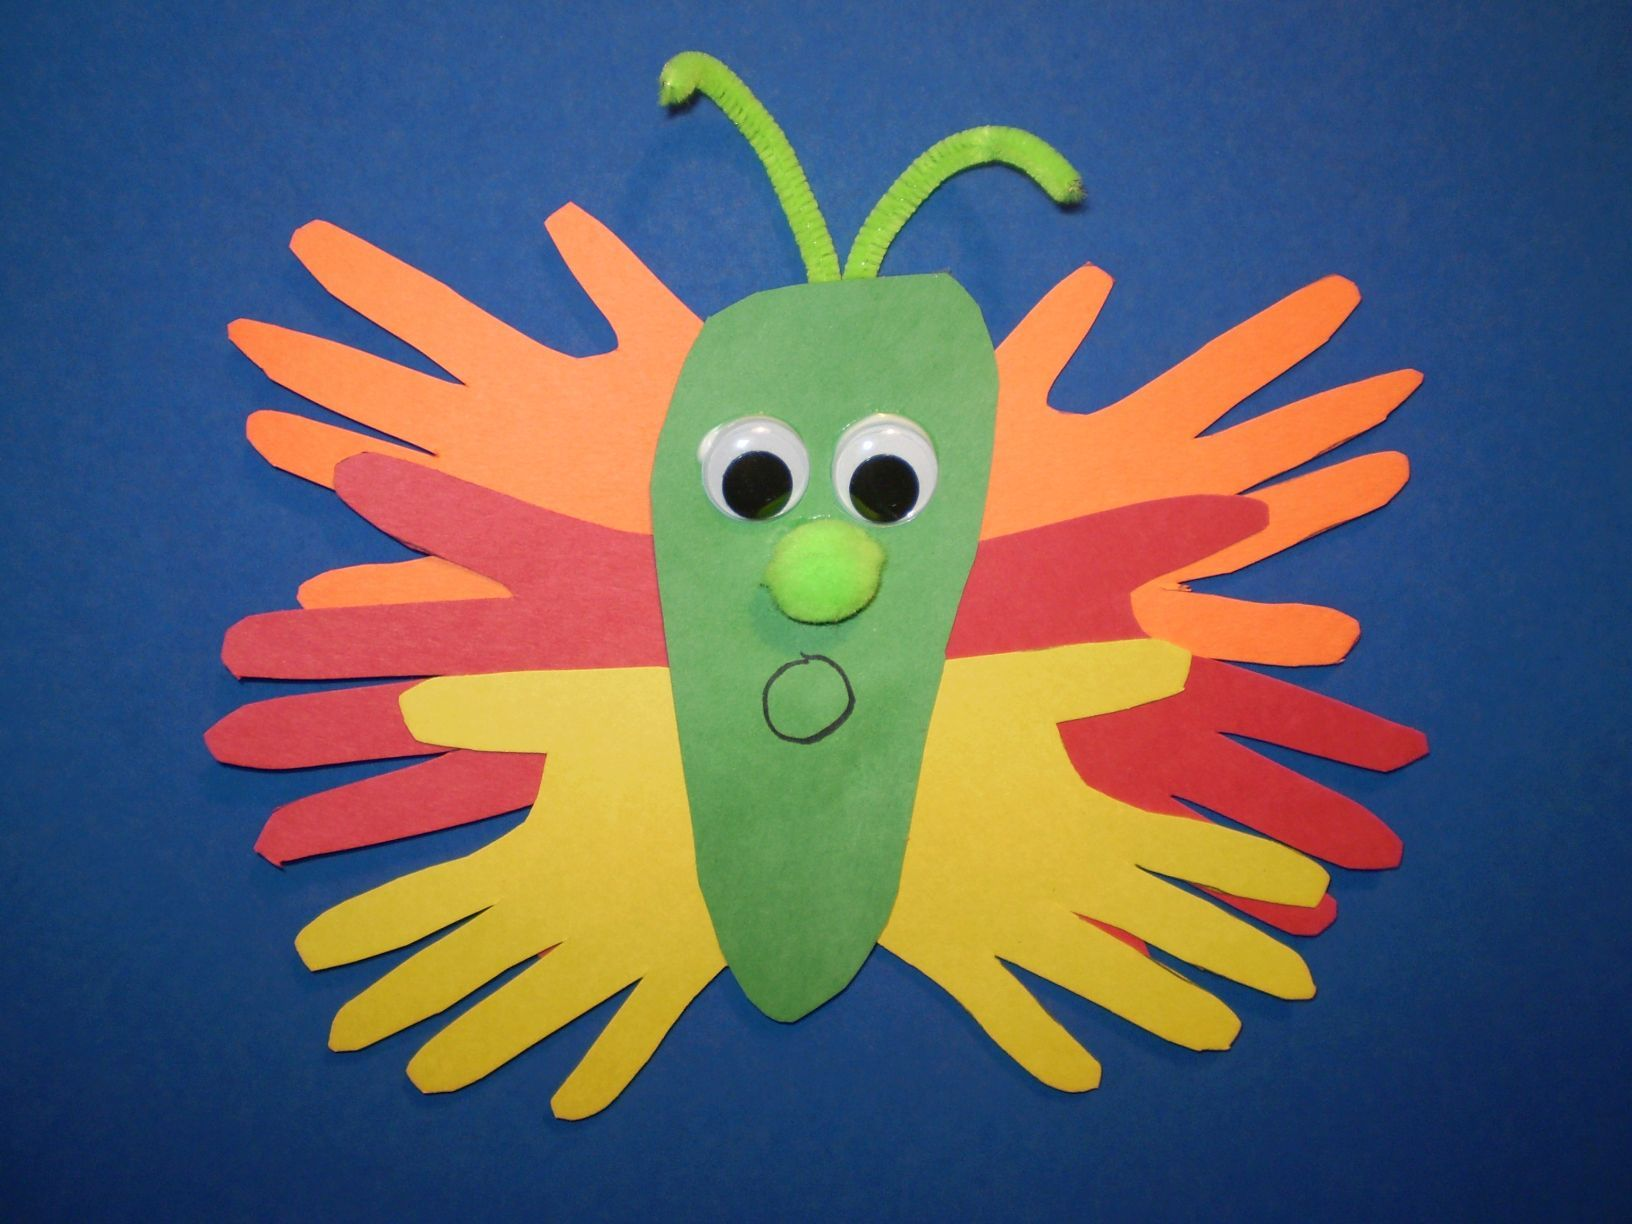 construction paper art projects | materials: colored construction